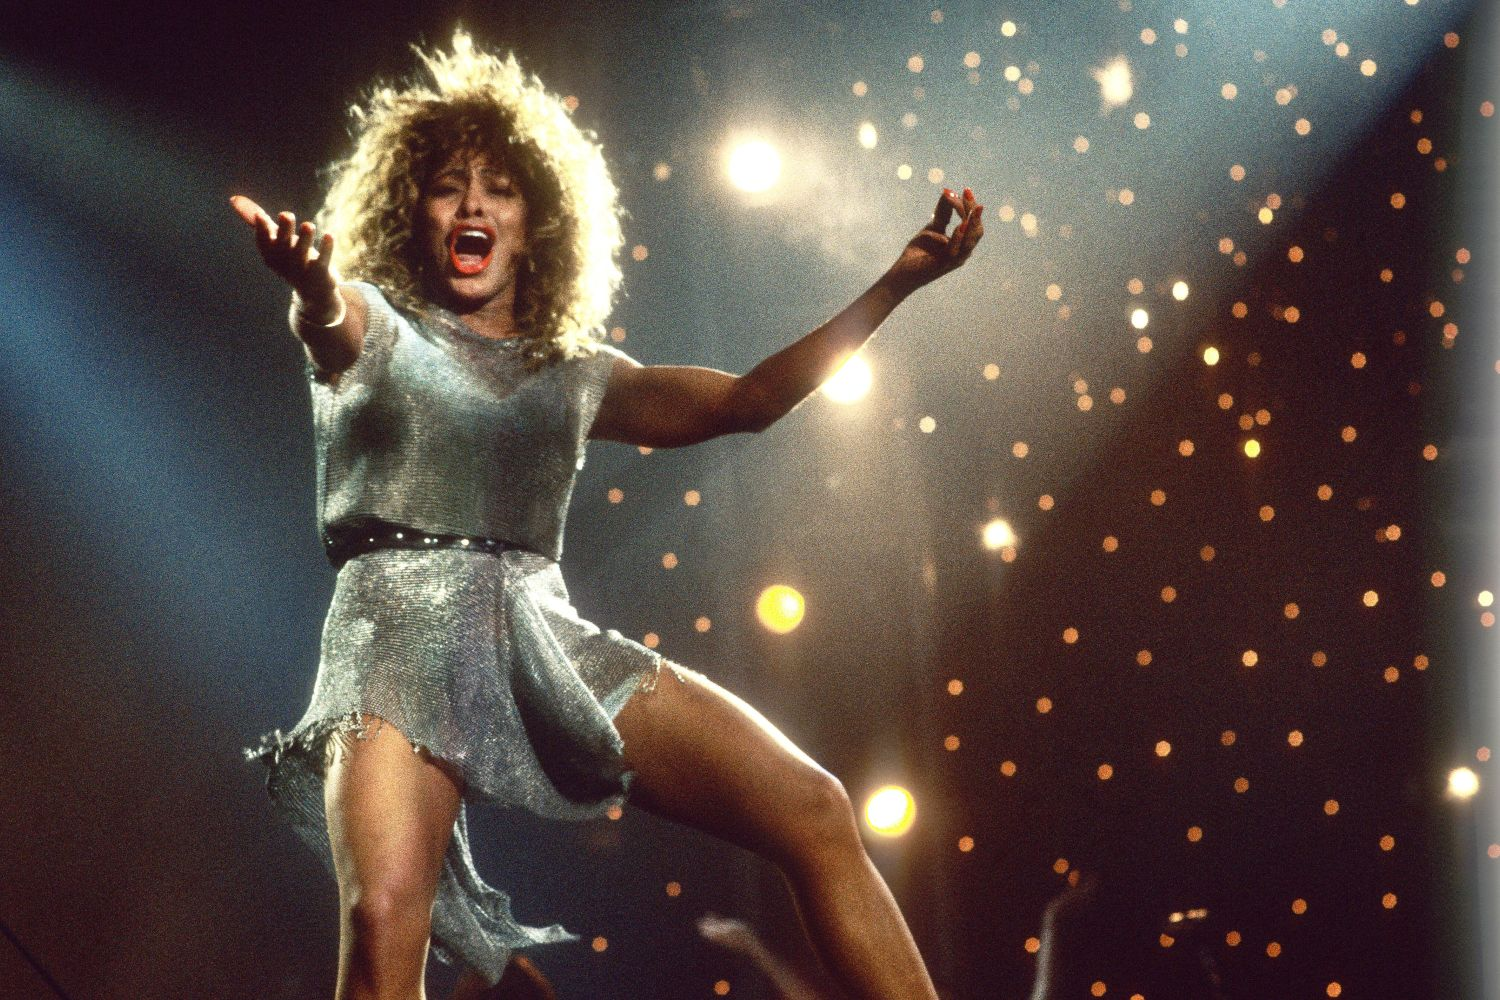 Tina Turner GettyImages 1155593058